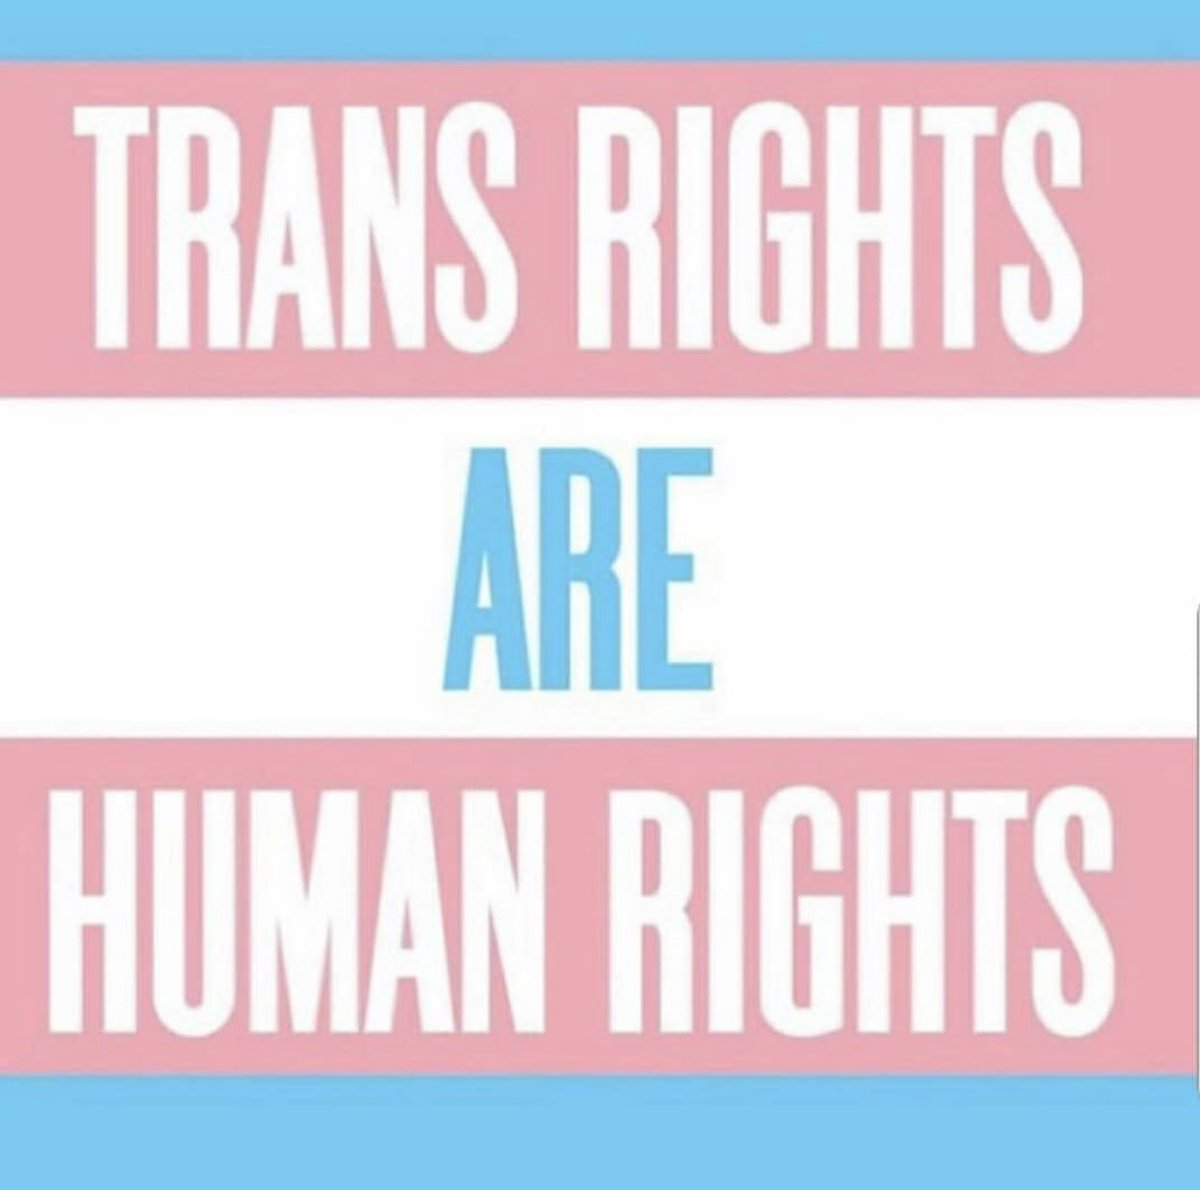 #TransRightsAreHumanRights https://t.co/juiAvdQSfo